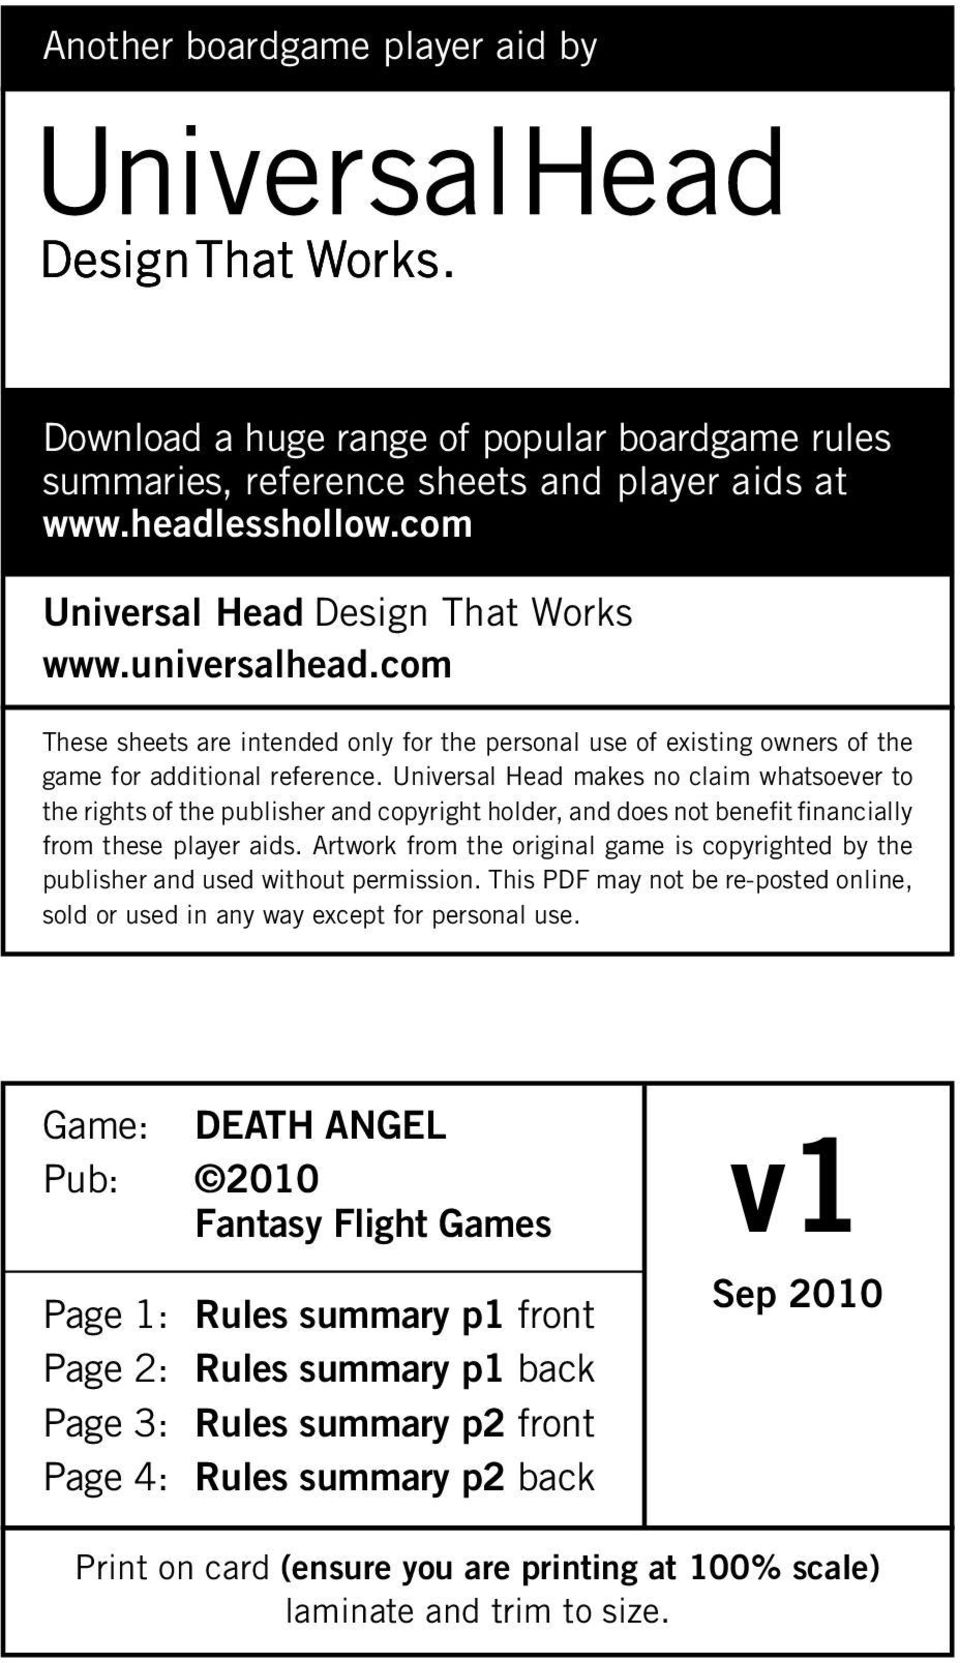 Universal Head makes no claim whatsoever to the rights of the publisher and copyright holder, and does not benefit financially from these player aids.